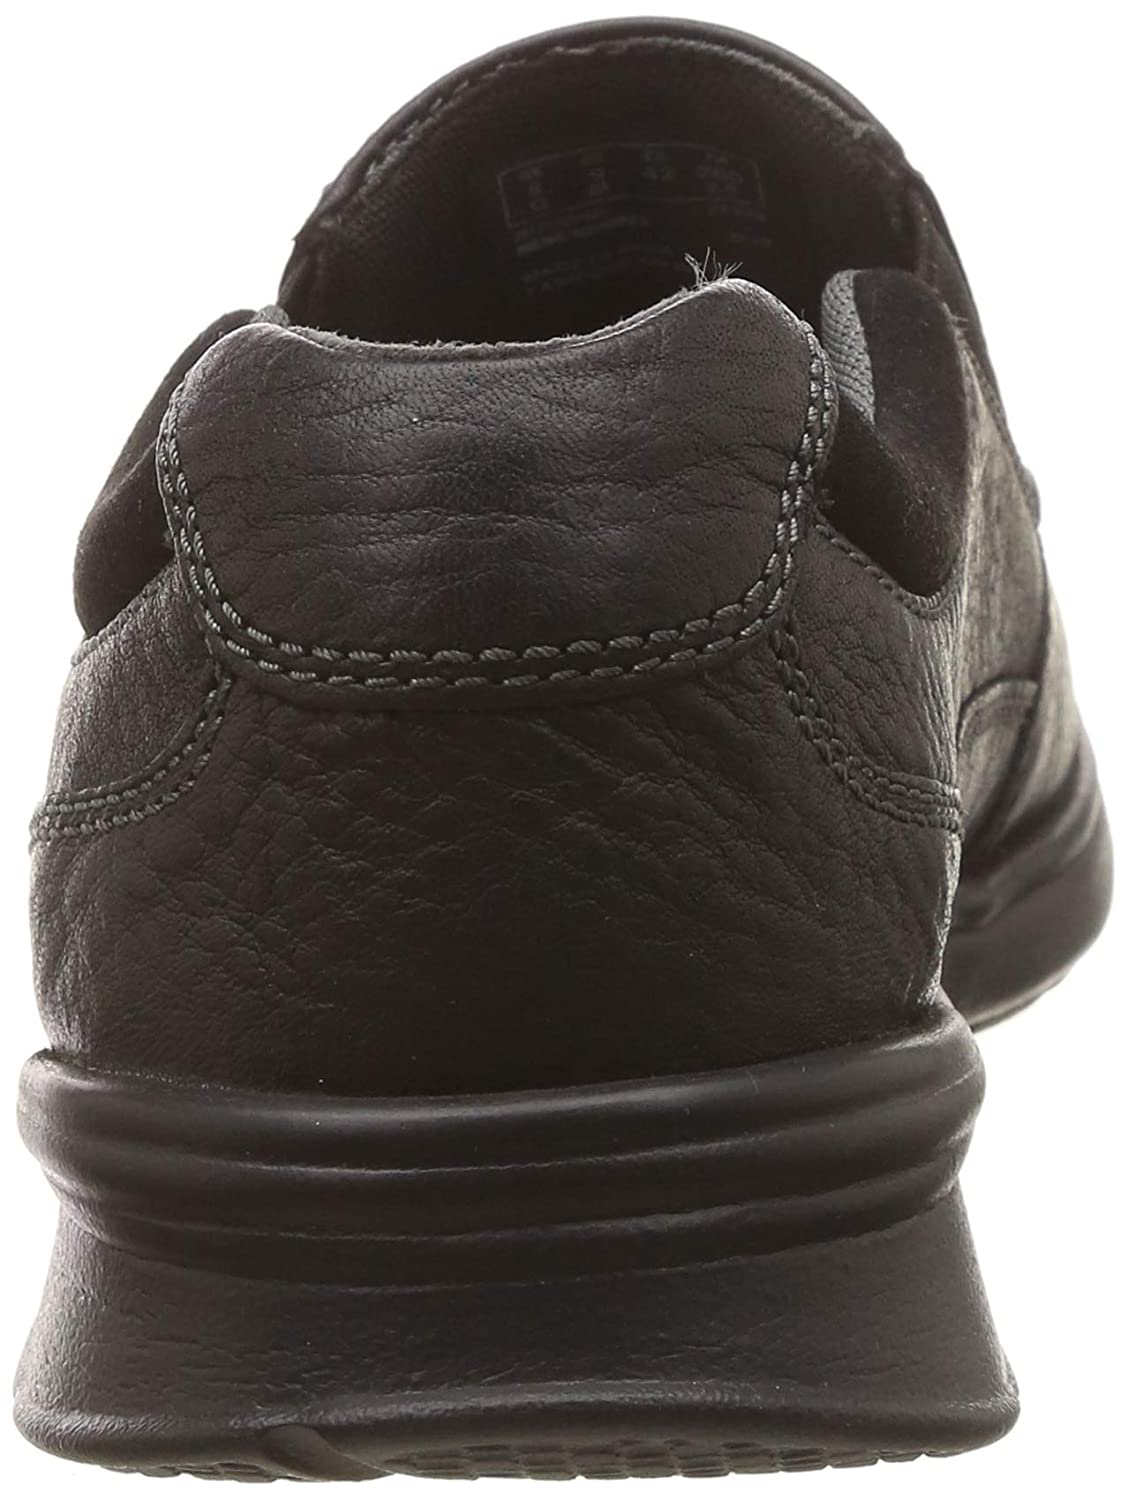 9d5b6cb36f1 Clarks Men s Cotrell Free Boat Shoes  Buy Online at Low Prices in India -  Amazon.in